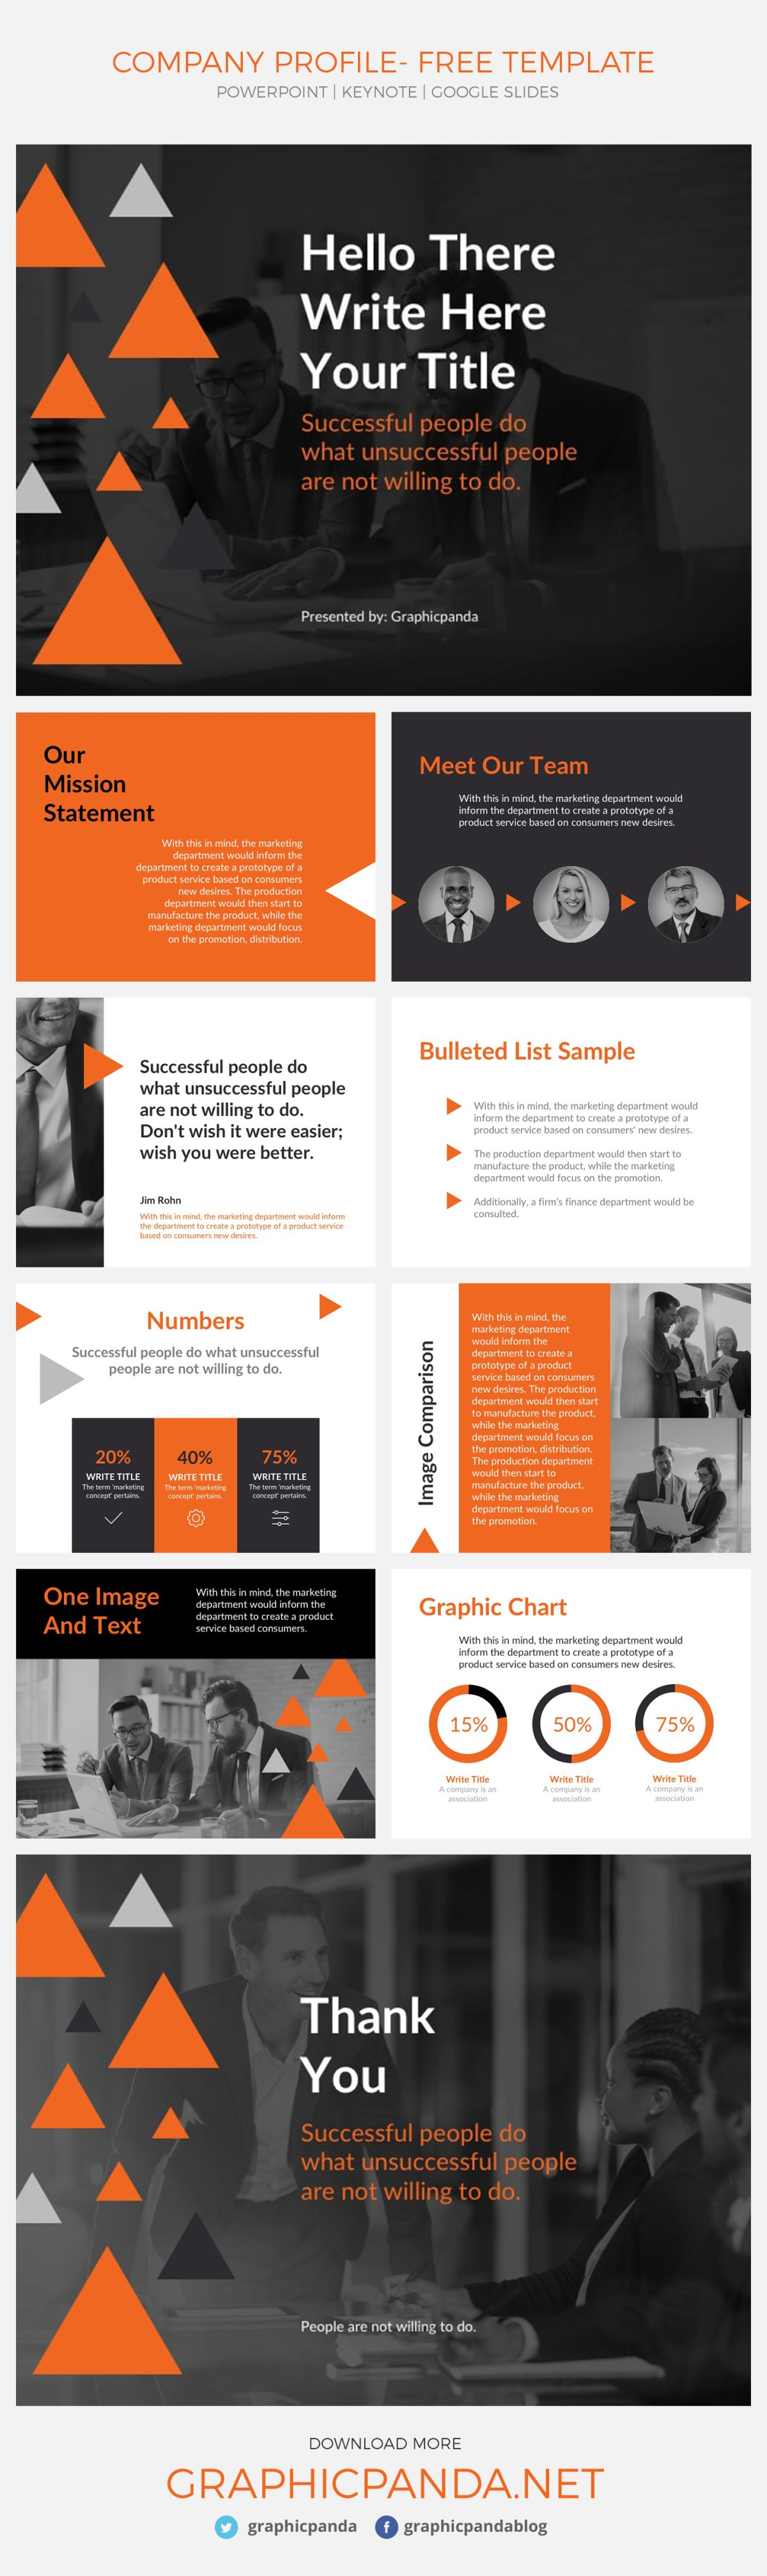 Create a professional presentation in no time with this free Company Profile Google Slides Theme. This simple to use and free presentation template comes also in two extra formats, Microsoft PowerPoint and Apple Keynote. That means that whether you like to work in Office, Mac or in the cloud, this business slides template will help you build an incredible pitch deck to present your company profile. This set of layouts is multipurpose, that means that you will be able to adjust the theme of the slide to whichever is your company. Also, no matter the size of the company you are representing with this free presentation template Company Profile Google Slides Theme and PowerPoint and Keynote, you will be able to introduce your small business or fortune 500 with confidence and professionalism.